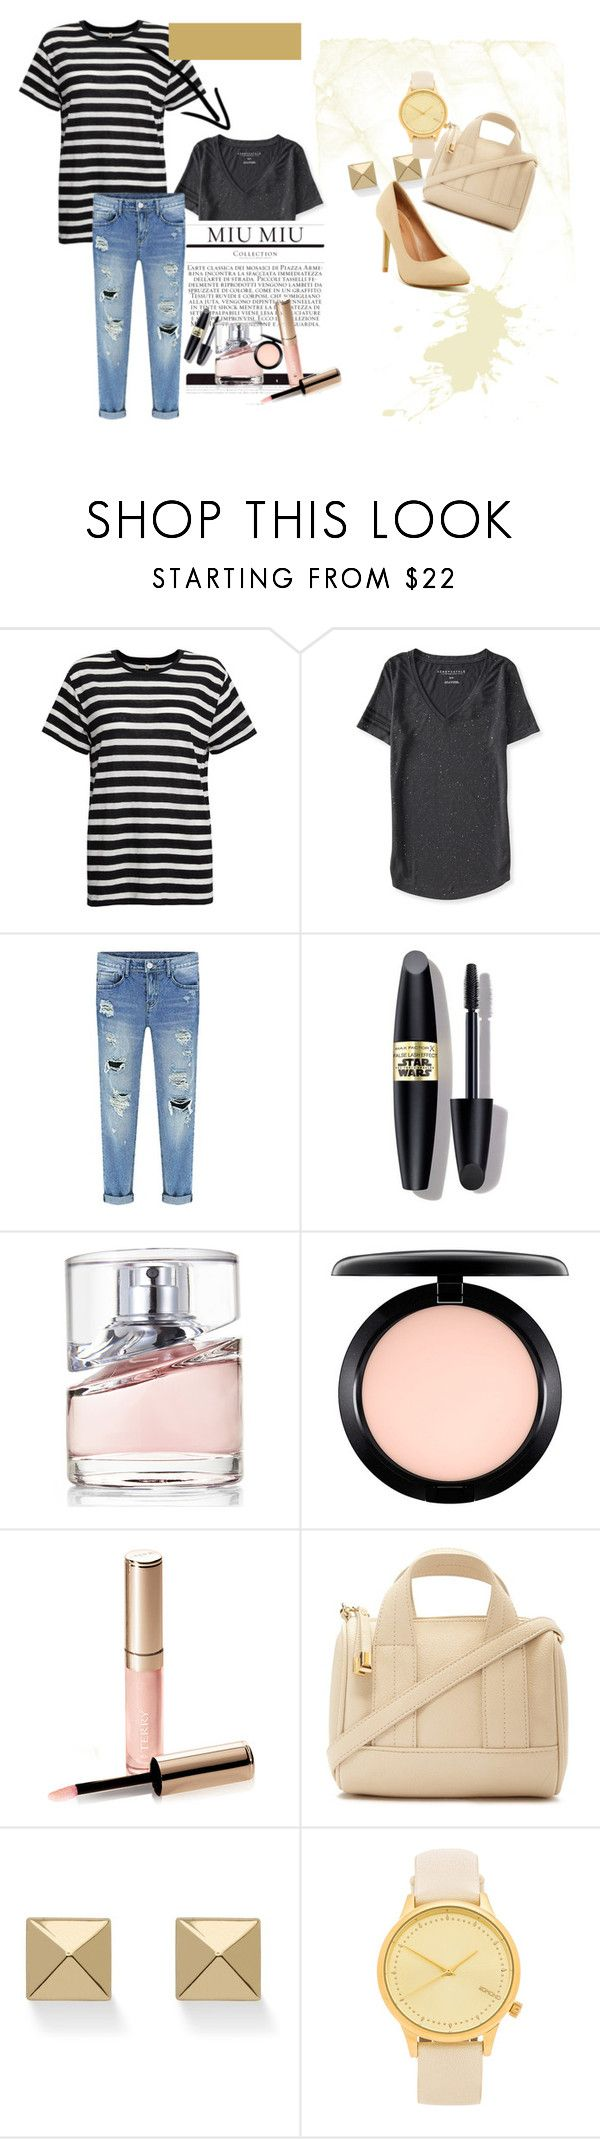 """""""stripe 5"""" by ajriyaf on Polyvore featuring R13, Aéropostale, Max Factor, BOSS Hugo Boss, MAC Cosmetics, By Terry, Forever 21, Palm Beach Jewelry, Komono and Top Guy"""